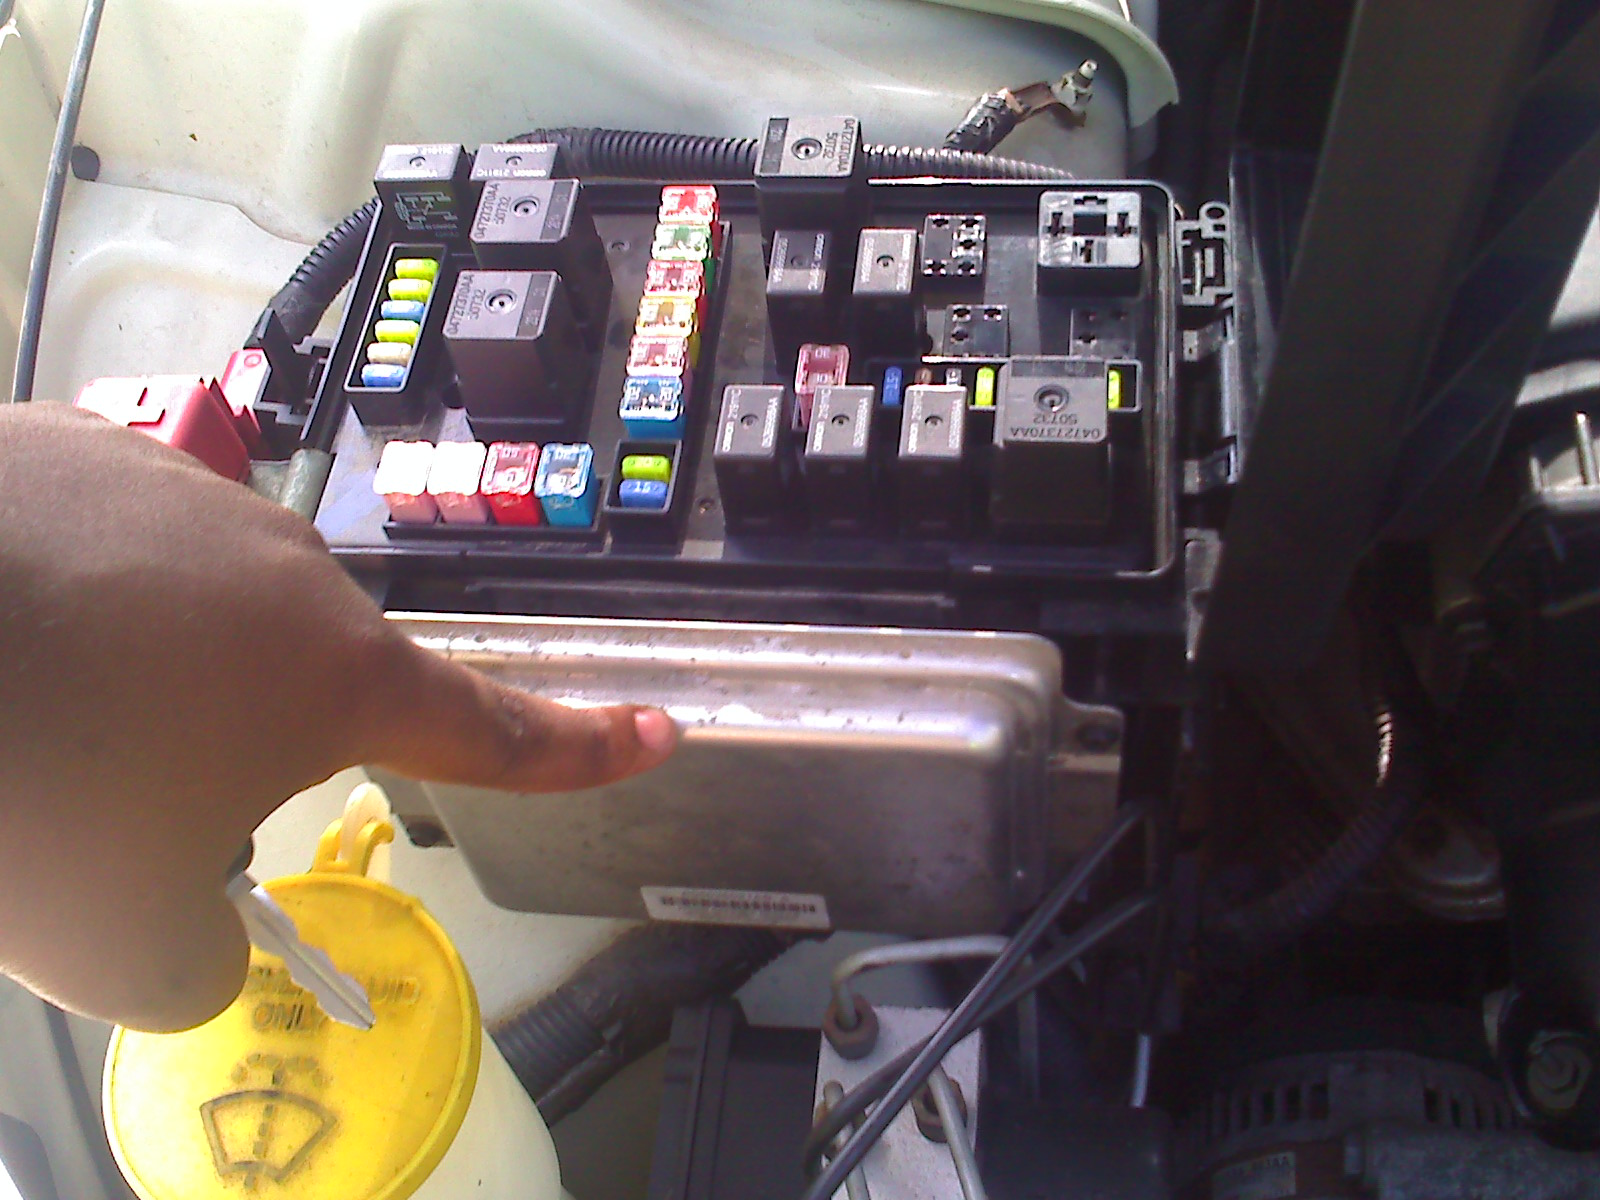 hight resolution of 1991 bmw 325i fuse box location wiring library 1991 bmw 325i fuse box location